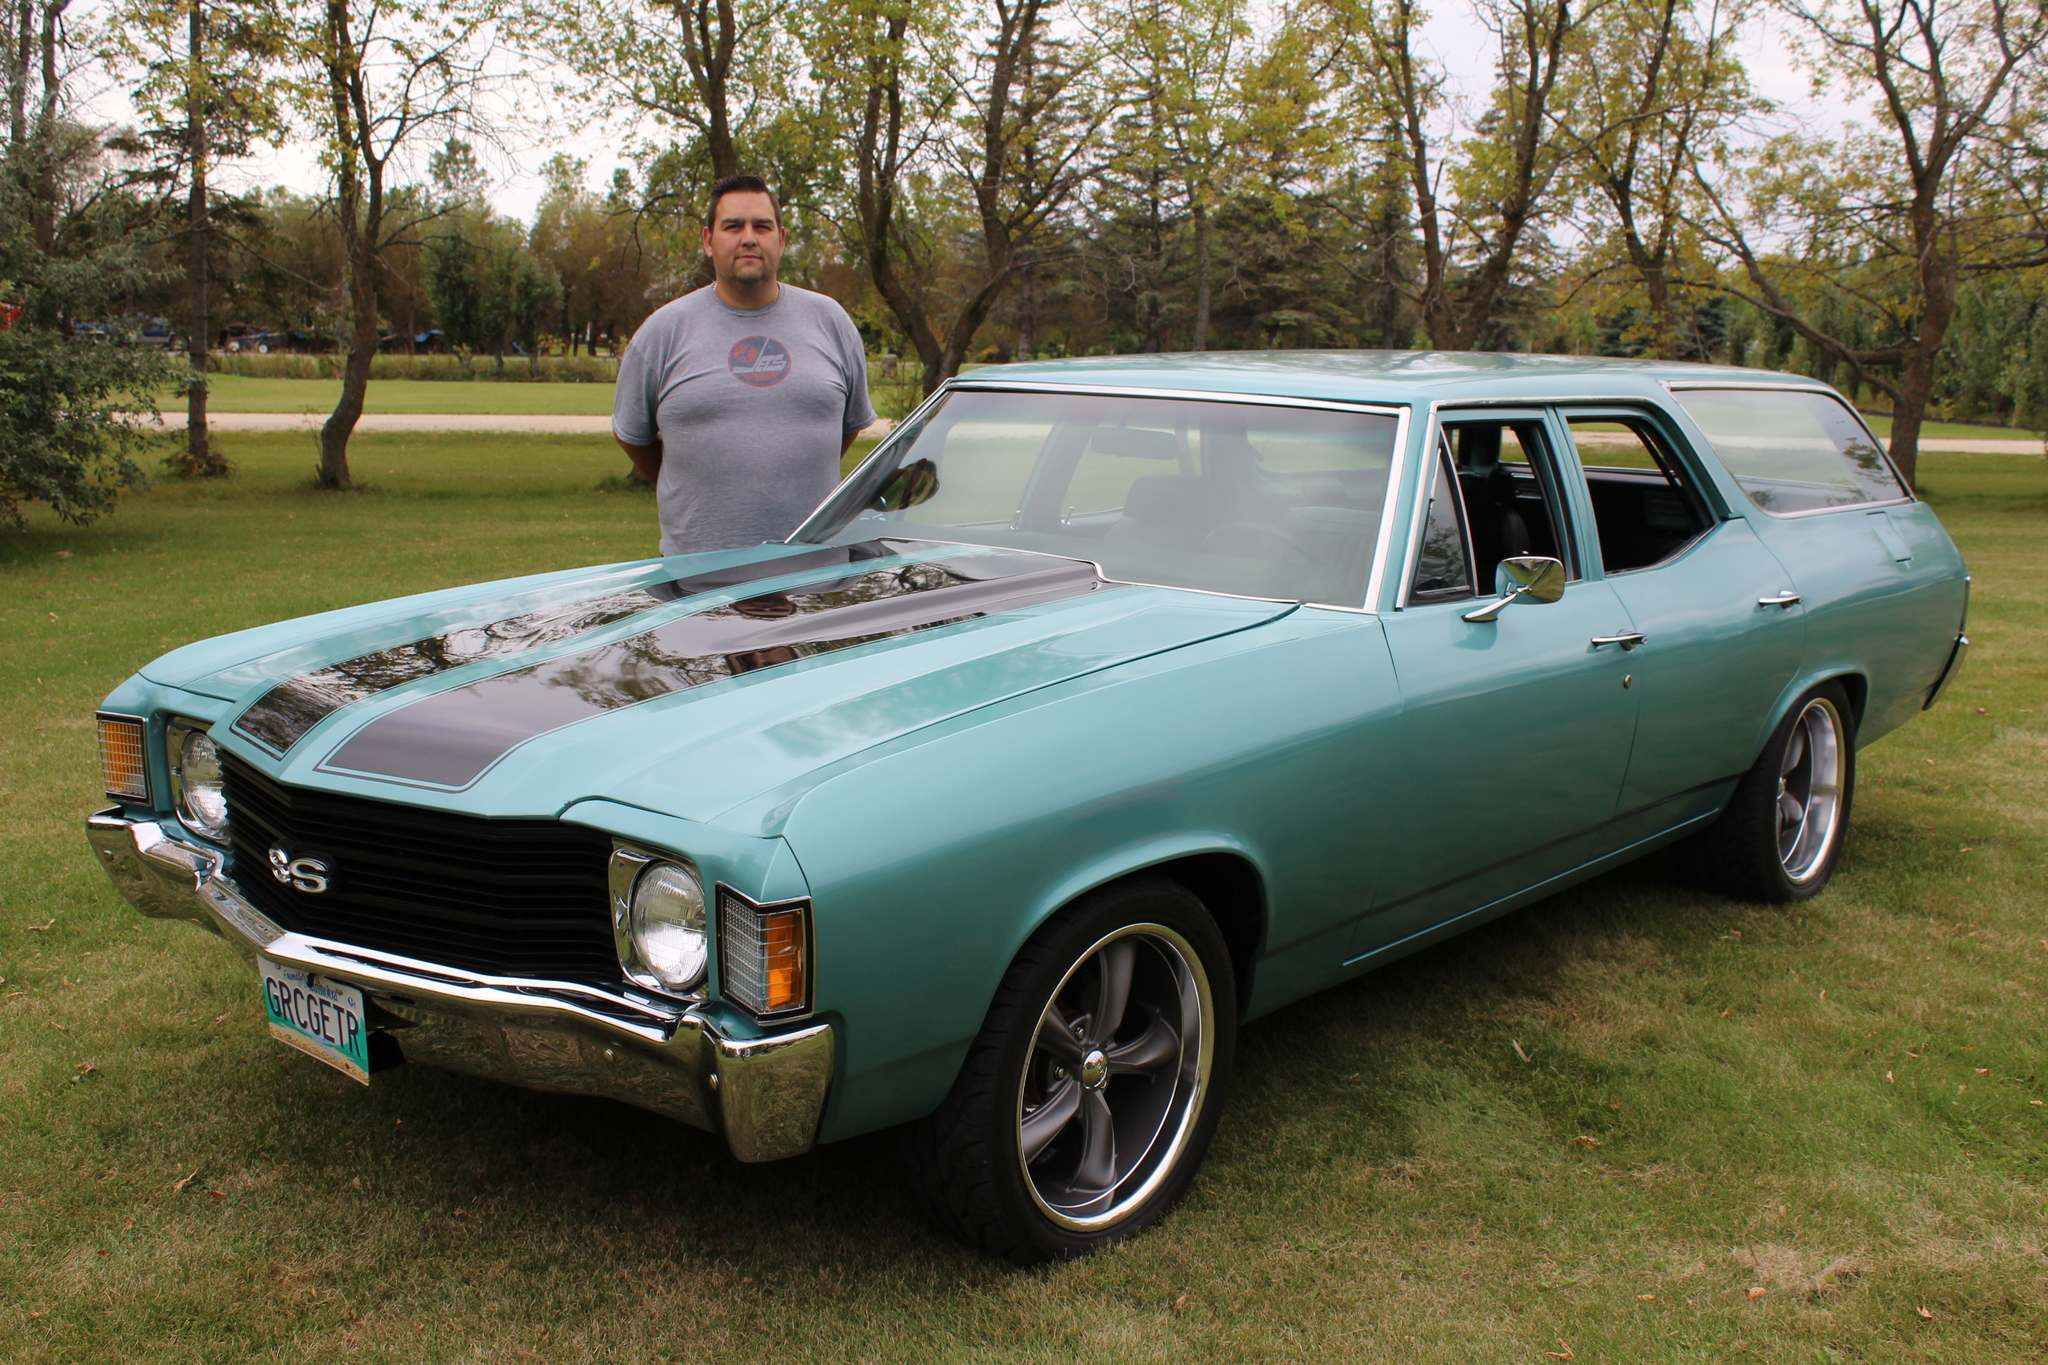 Photos by Larry D'Argis / Winnipeg Free PressIn 2009 Rob Sandul bought a 1972 Chevelle station wagon, which he got shipped from Santa Clara, Calif., to Pembina, N.D., before driving its new home to Manitoba.